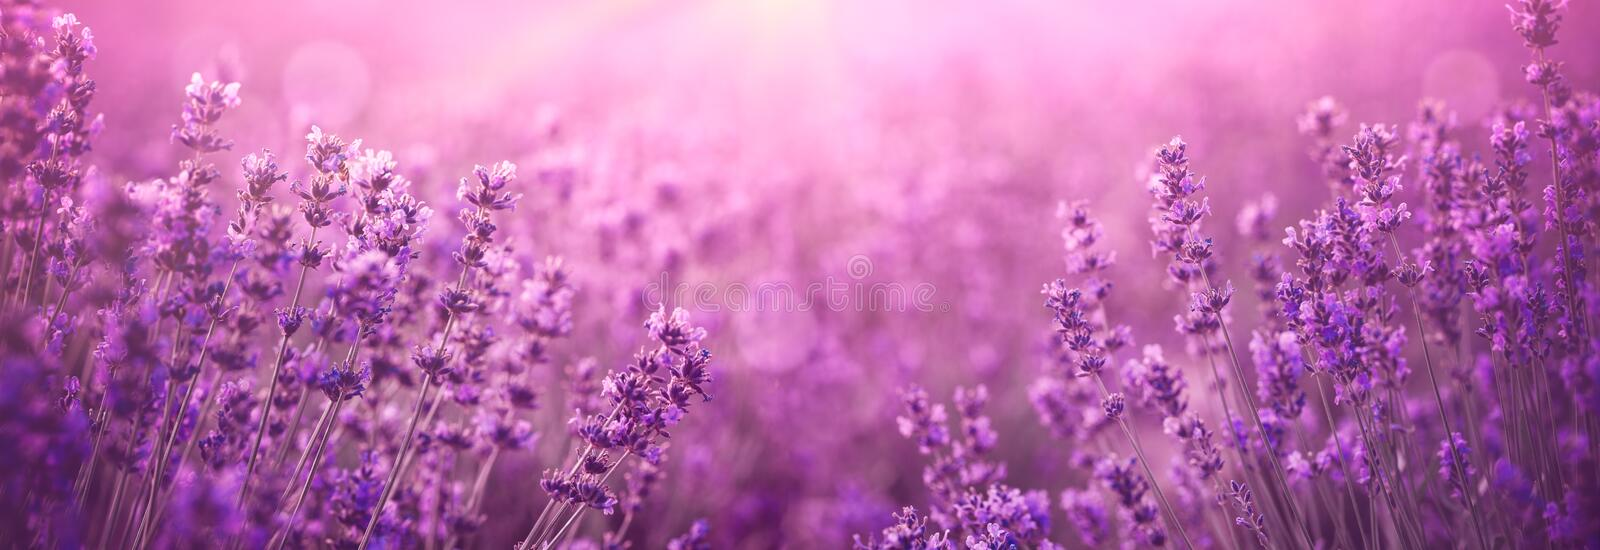 Violet lavender field stock photography